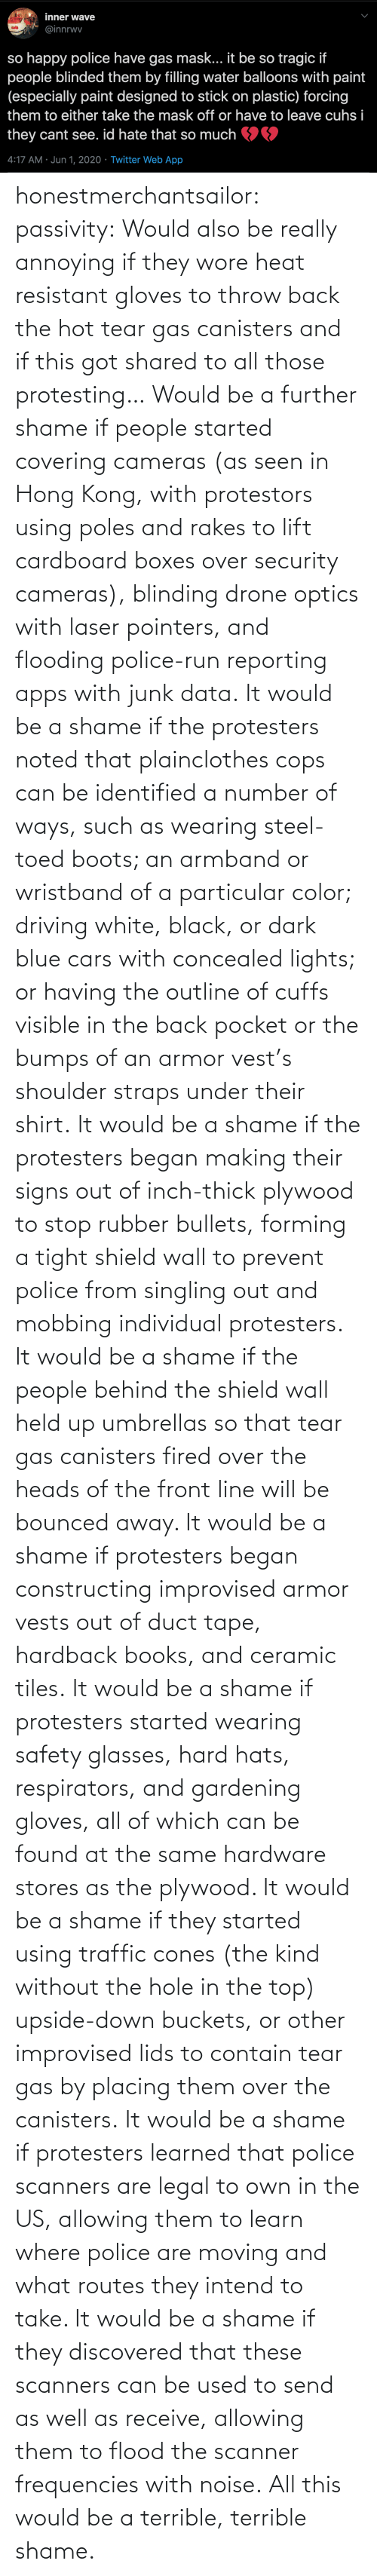 Watch: honestmerchantsailor:  passivity: Would also be really annoying if they wore heat resistant gloves to throw back the hot tear gas canisters and if this got shared to all those protesting… Would be a further shame if people started covering cameras (as seen in Hong Kong, with protestors using poles and rakes to lift cardboard boxes over security cameras), blinding drone optics with laser pointers, and flooding police-run reporting apps with junk data. It would be a shame if the protesters noted that plainclothes cops can be identified a number of ways, such as wearing steel-toed boots; an armband or wristband of a particular color; driving white, black, or dark blue cars with concealed lights; or having the outline of cuffs visible in the back pocket or the bumps of an armor vest's shoulder straps under their shirt. It would be a shame if the protesters began making their signs out of inch-thick plywood to stop rubber bullets, forming a tight shield wall to prevent police from singling out and mobbing individual protesters. It would be a shame if the people behind the shield wall held up umbrellas so that tear gas canisters fired over the heads of the front line will be bounced away. It would be a shame if protesters began constructing improvised armor vests out of duct tape, hardback books, and ceramic tiles. It would be a shame if protesters started wearing safety glasses, hard hats, respirators, and gardening gloves, all of which can be found at the same hardware stores as the plywood. It would be a shame if they started using traffic cones (the kind without the hole in the top) upside-down buckets, or other improvised lids to contain tear gas by placing them over the canisters. It would be a shame if protesters learned that police scanners are legal to own in the US, allowing them to learn where police are moving and what routes they intend to take. It would be a shame if they discovered that these scanners can be used to send as well as receive, allowing them to flood the scanner frequencies with noise. All this would be a terrible, terrible shame.